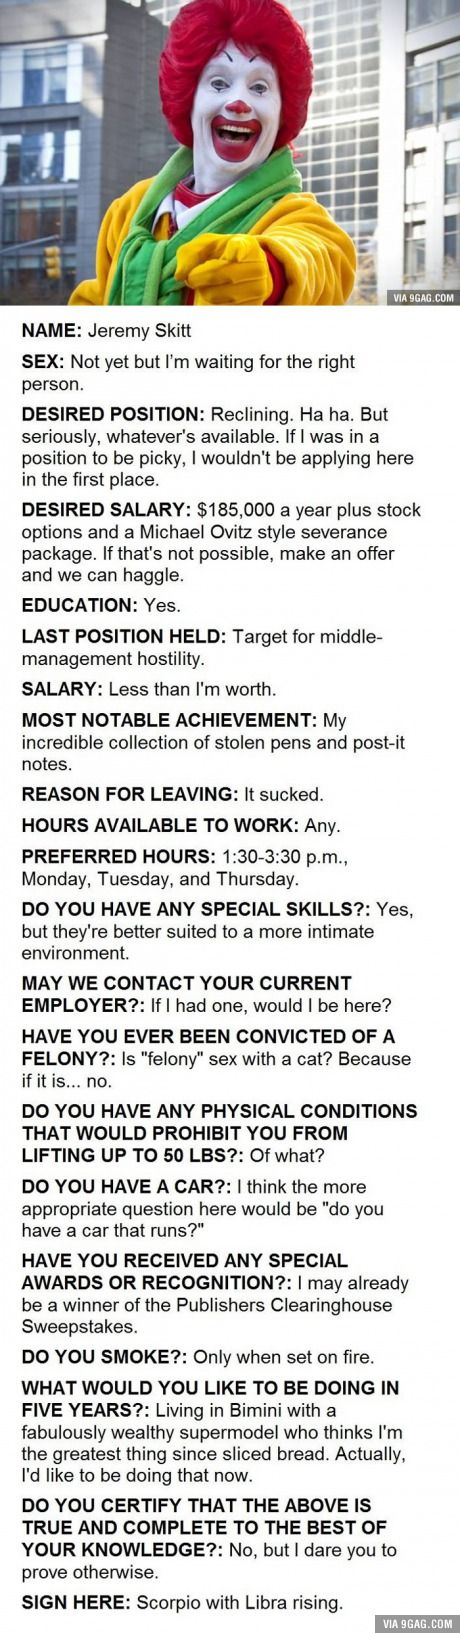 Allegedly This Is An Actual Job Application Submitted To A McDonald's In Florida. And They Hired Him For His Honesty...